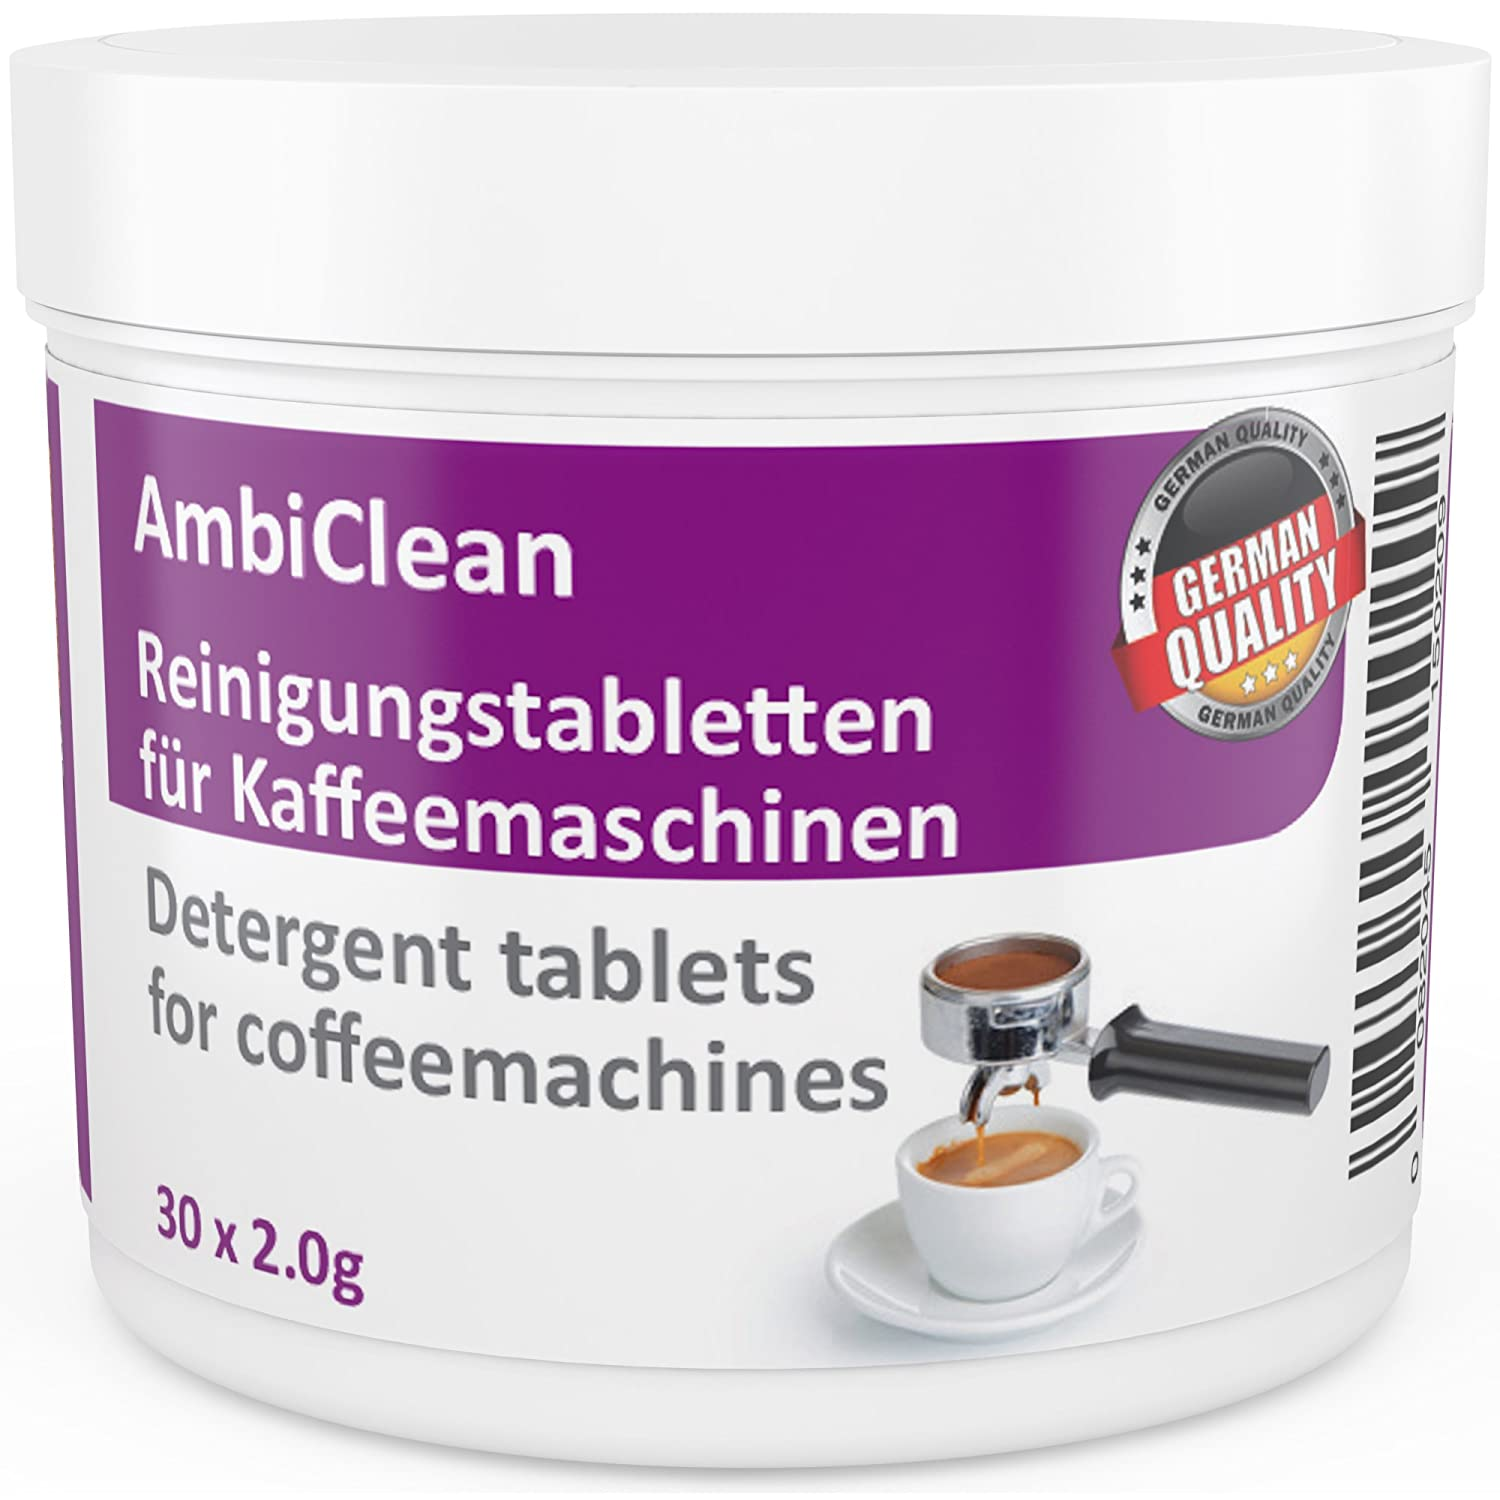 30 Cleaning Tablets for Coffee Machines Cleaner compatible with Jura Siemens Bosch Nescafe Andrew James Delonghi and many more for Automatic Filter Pad Capsule Machine Ambideluxe